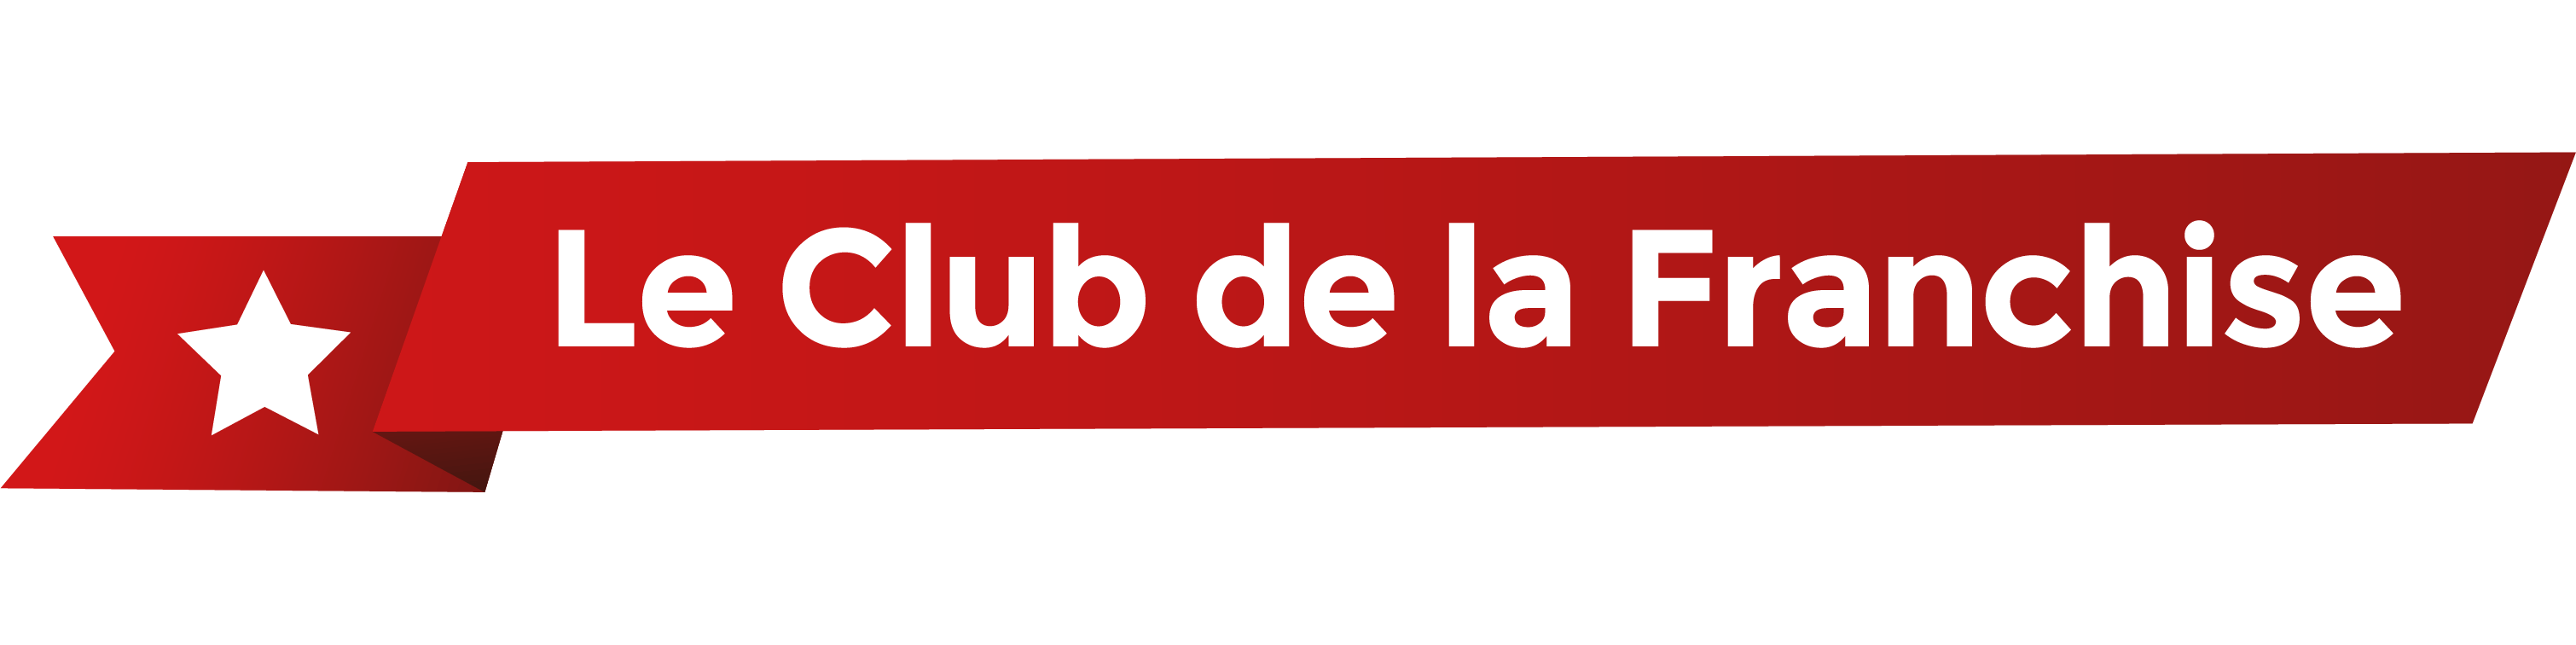 Le Club de la Franchise